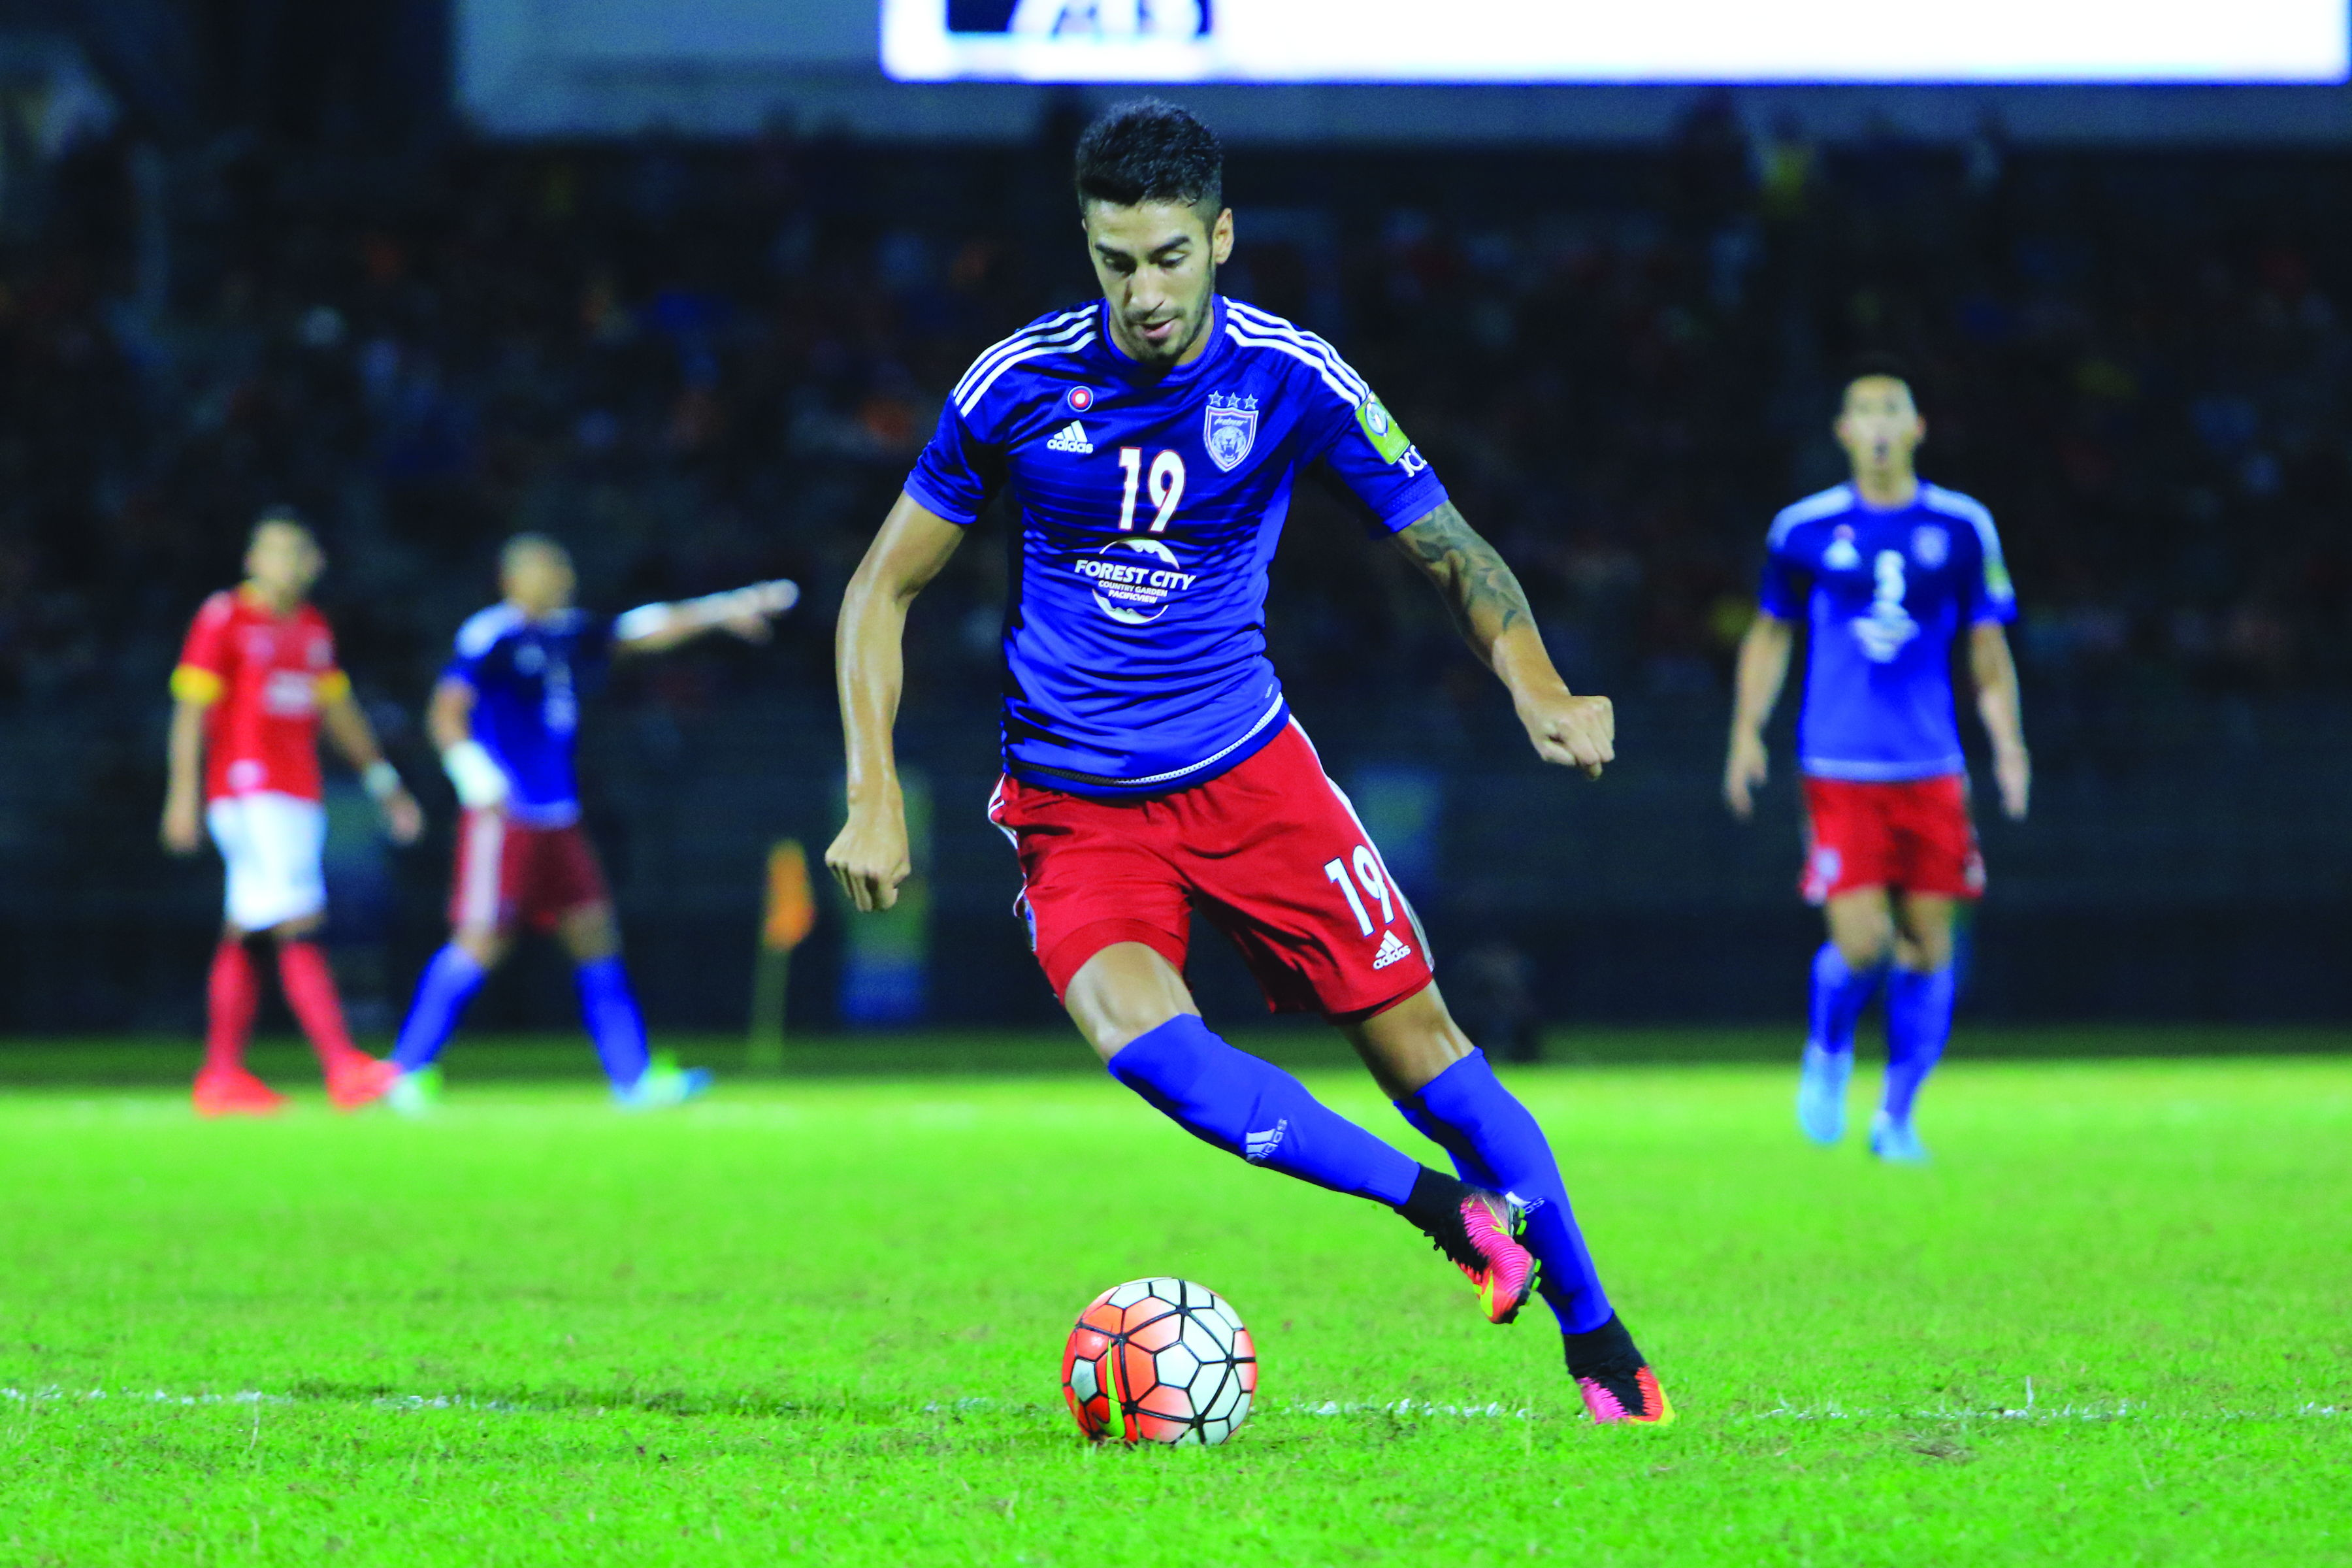 The Johor Southern Tigers